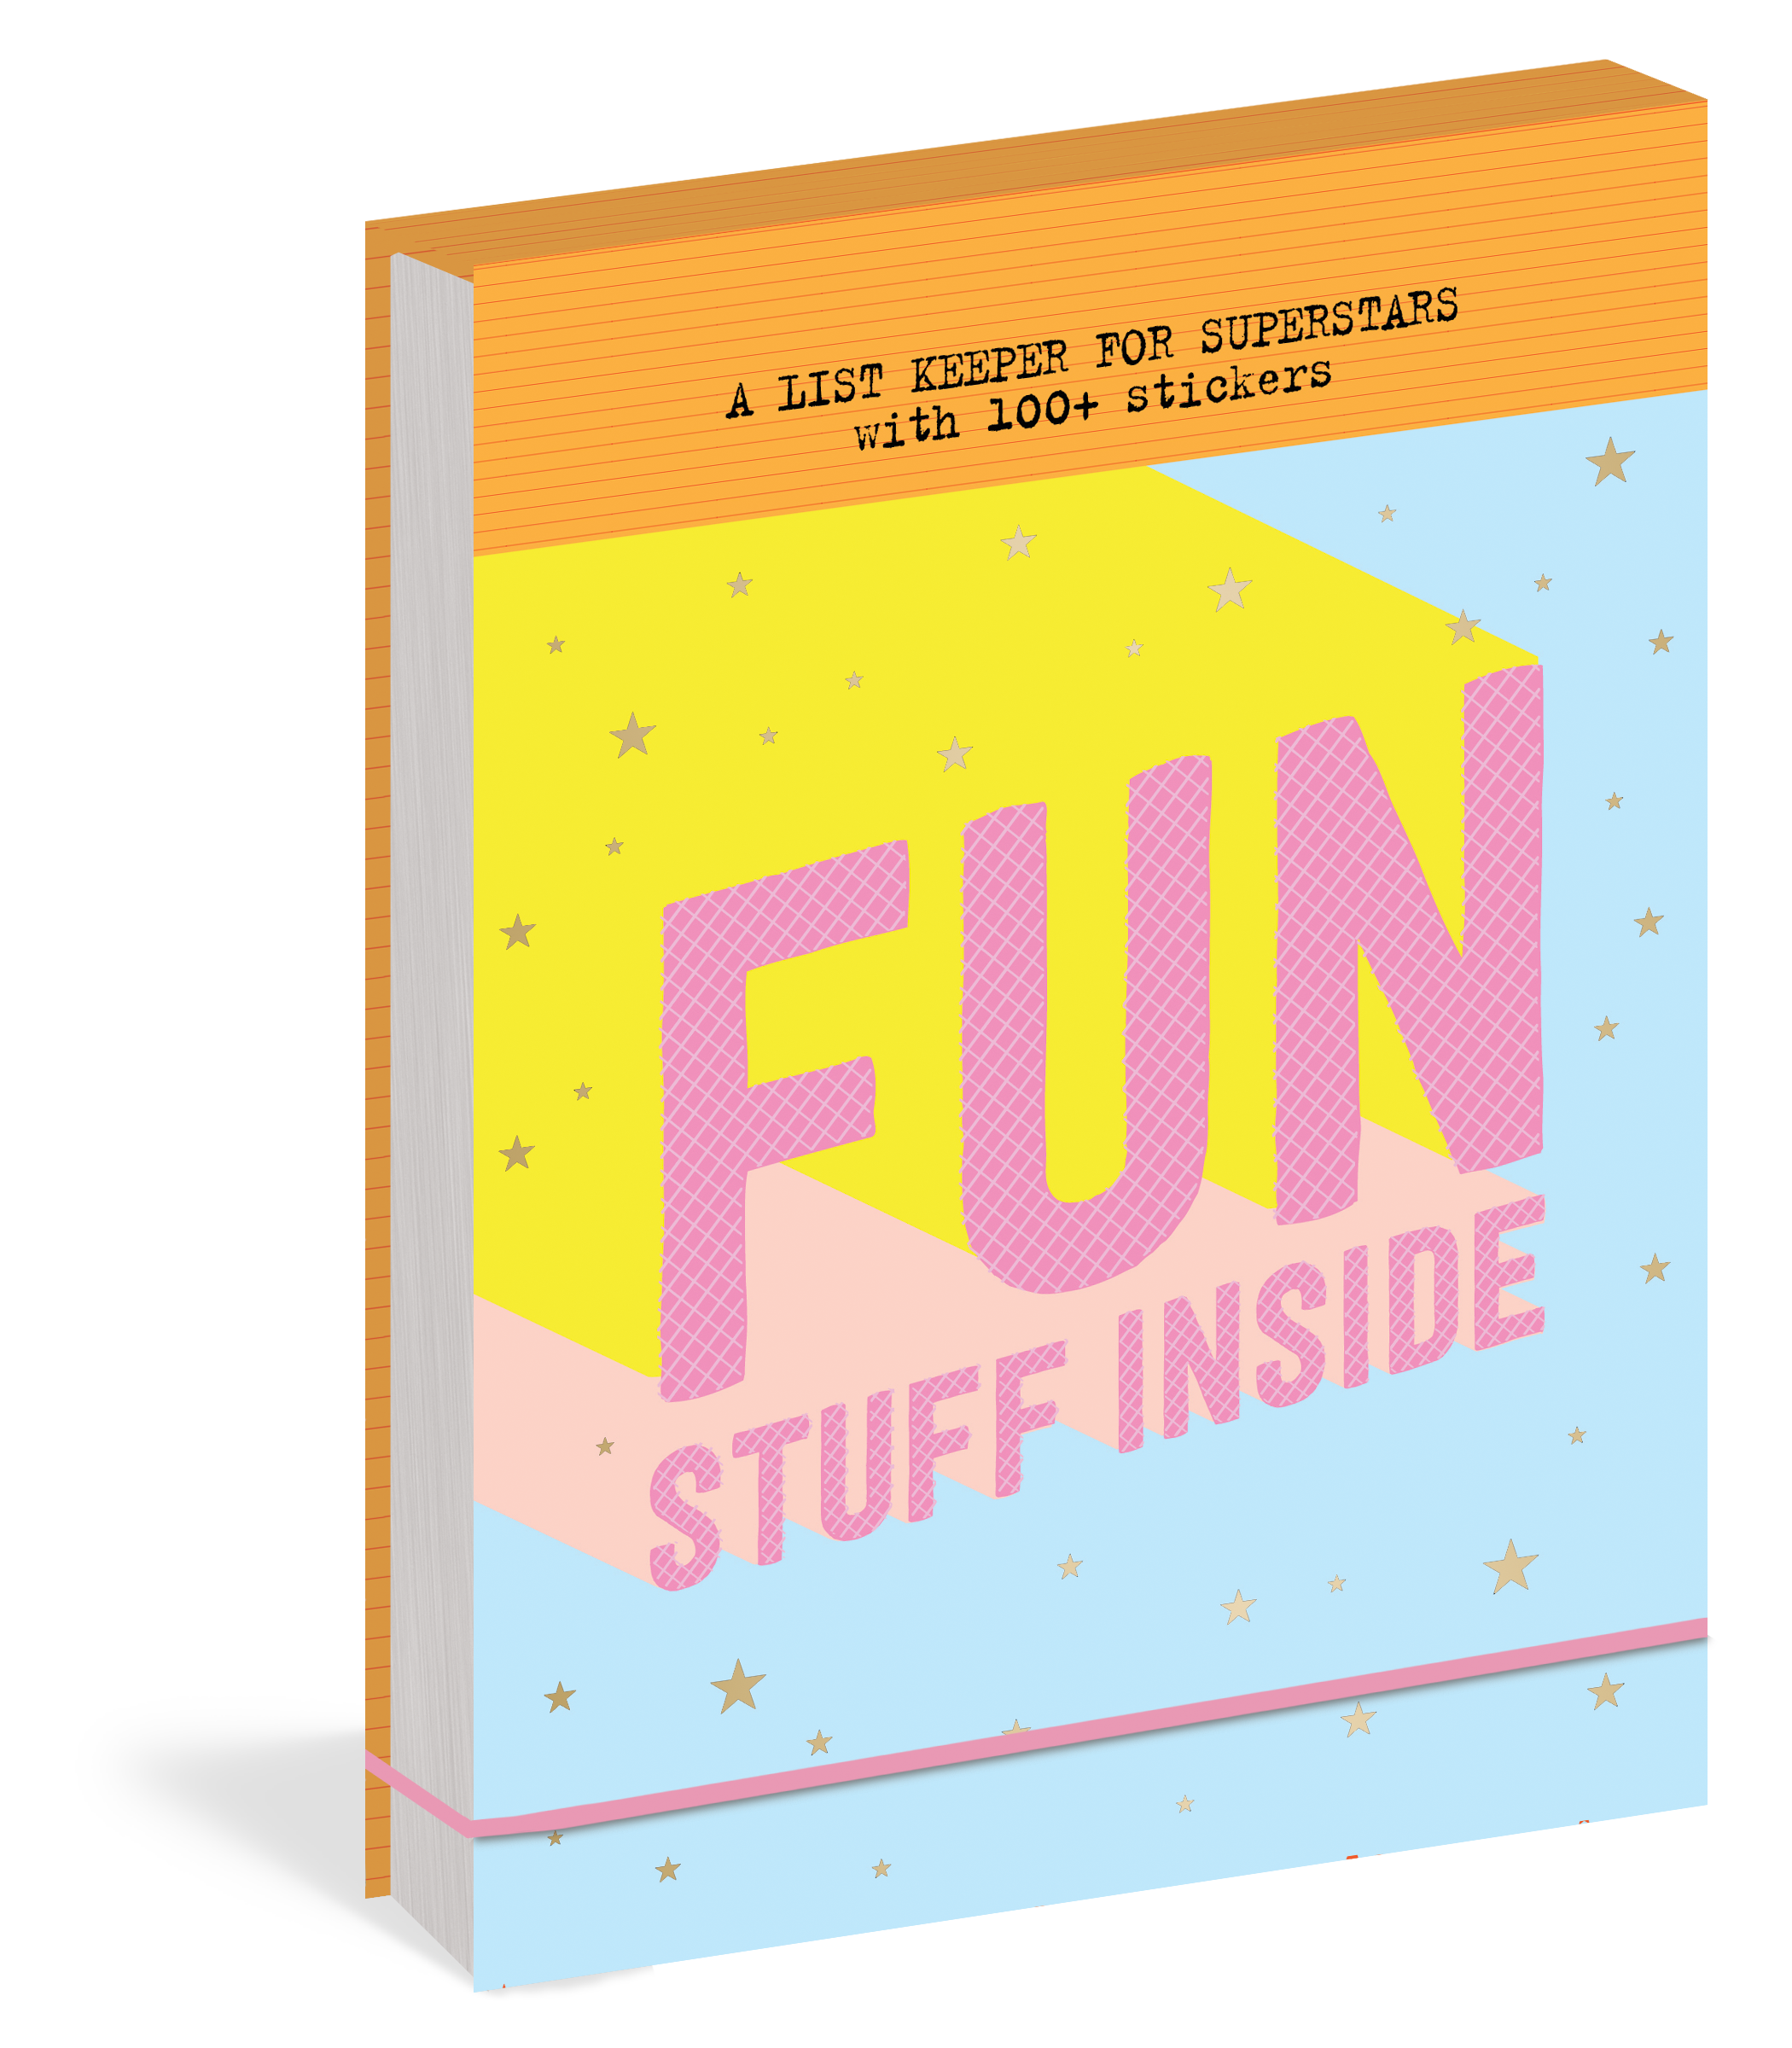 FUN STUFF INSIDE : A LIST KEEPER FOR SUPERSTARS